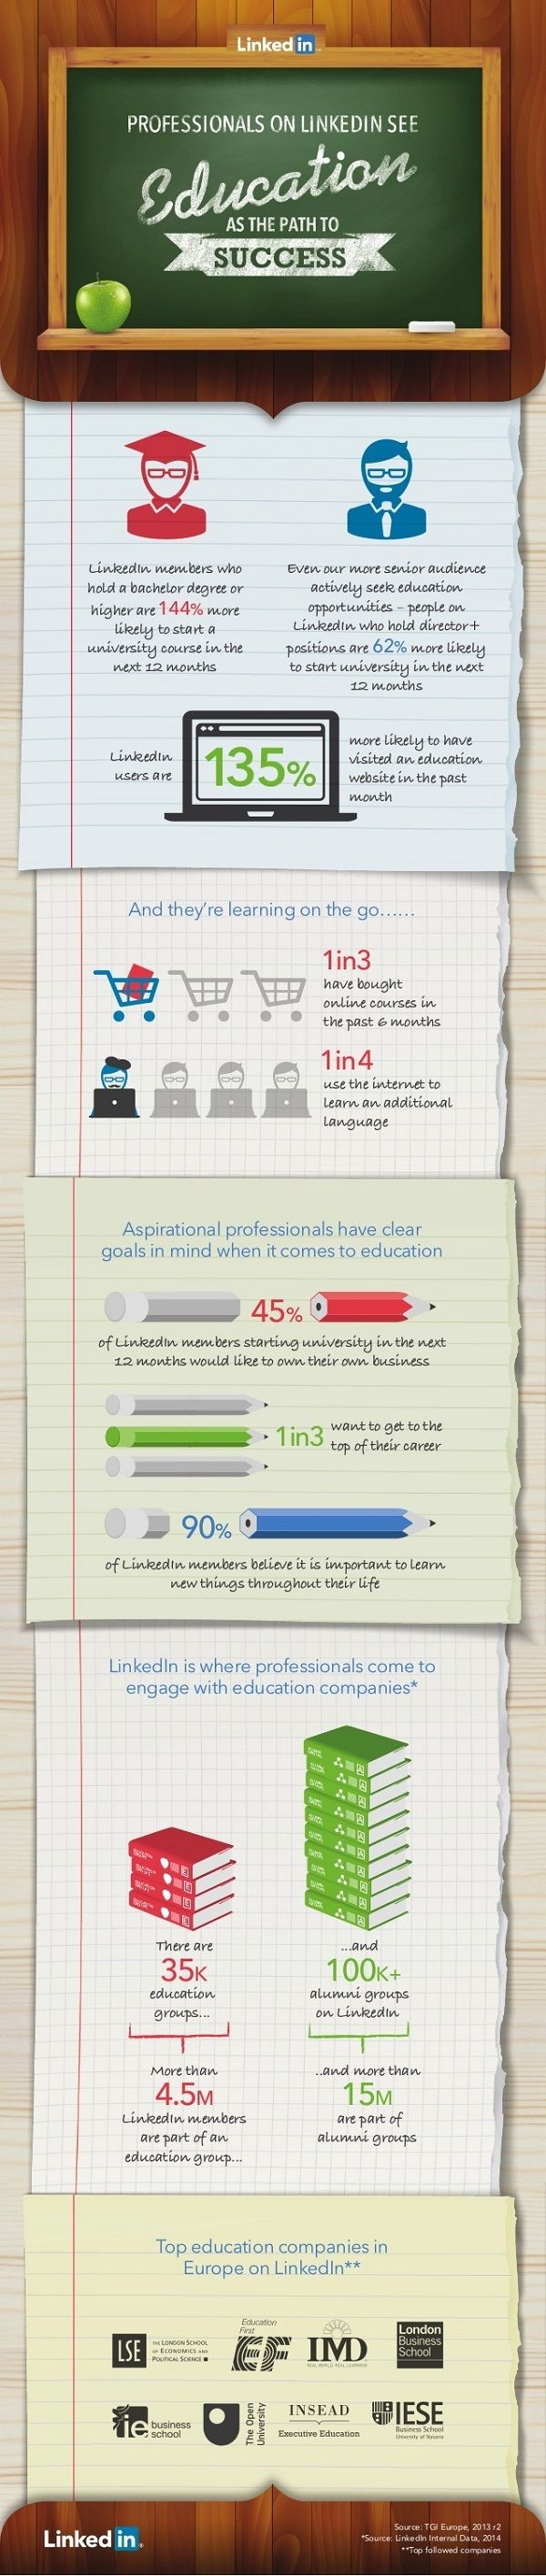 Professionals on LinkedIn see: Education as the path to success, by LinkedIn